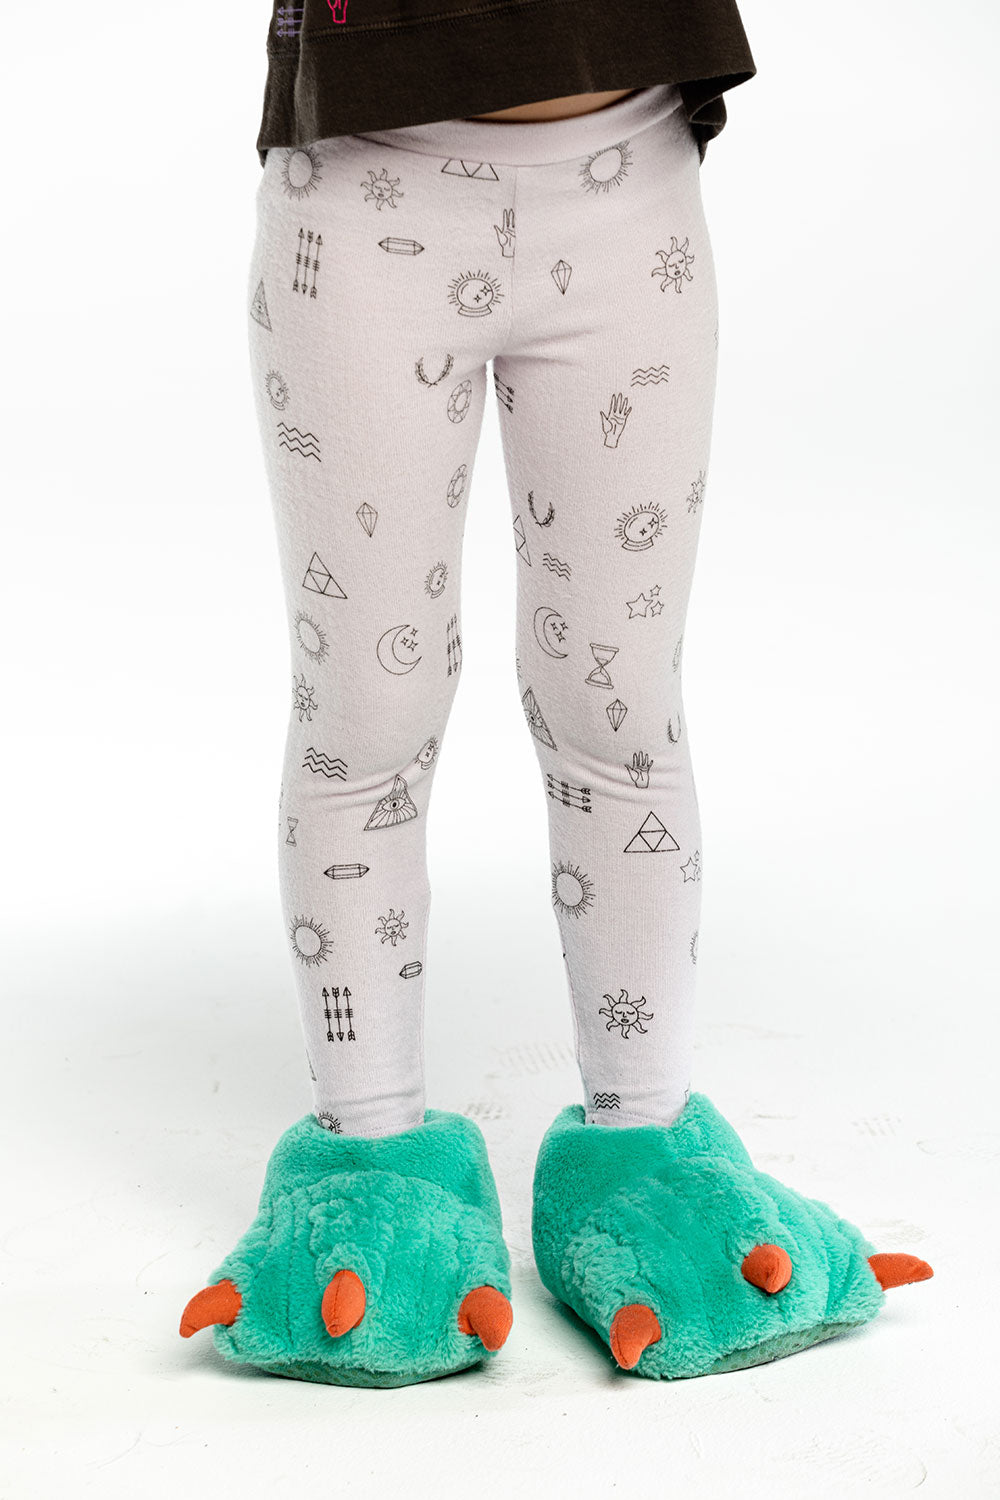 Mystical Icon Leggings GIRLS chaserbrand4.myshopify.com